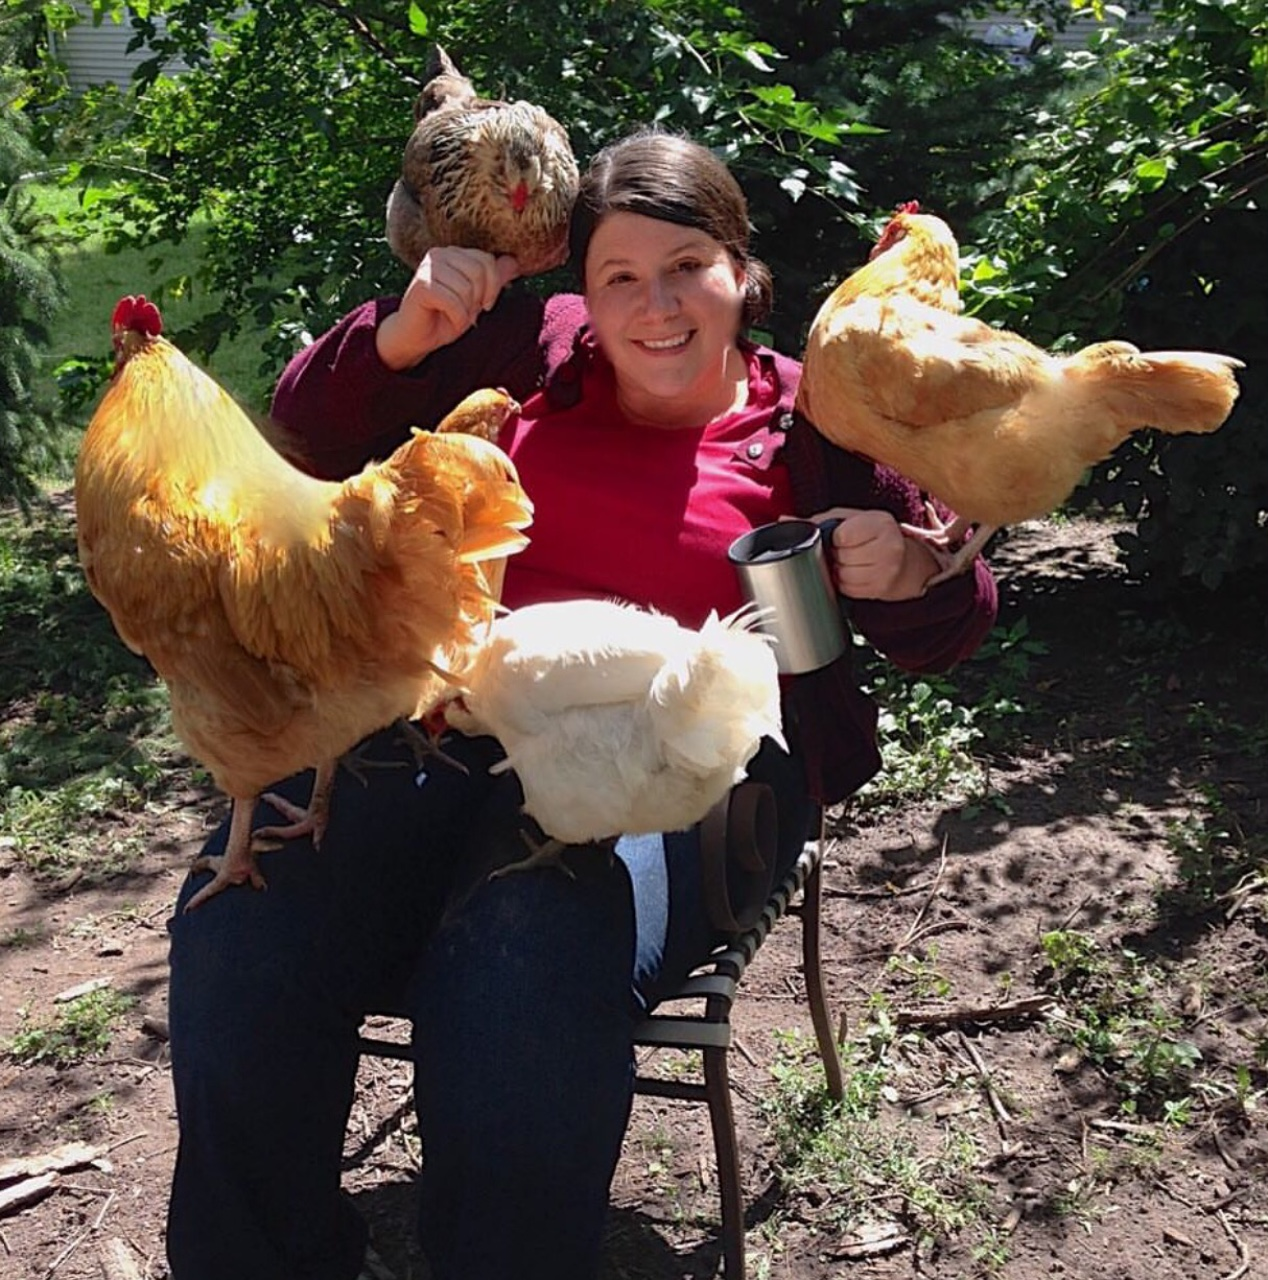 Crazy chicken lady ambushed by chickens